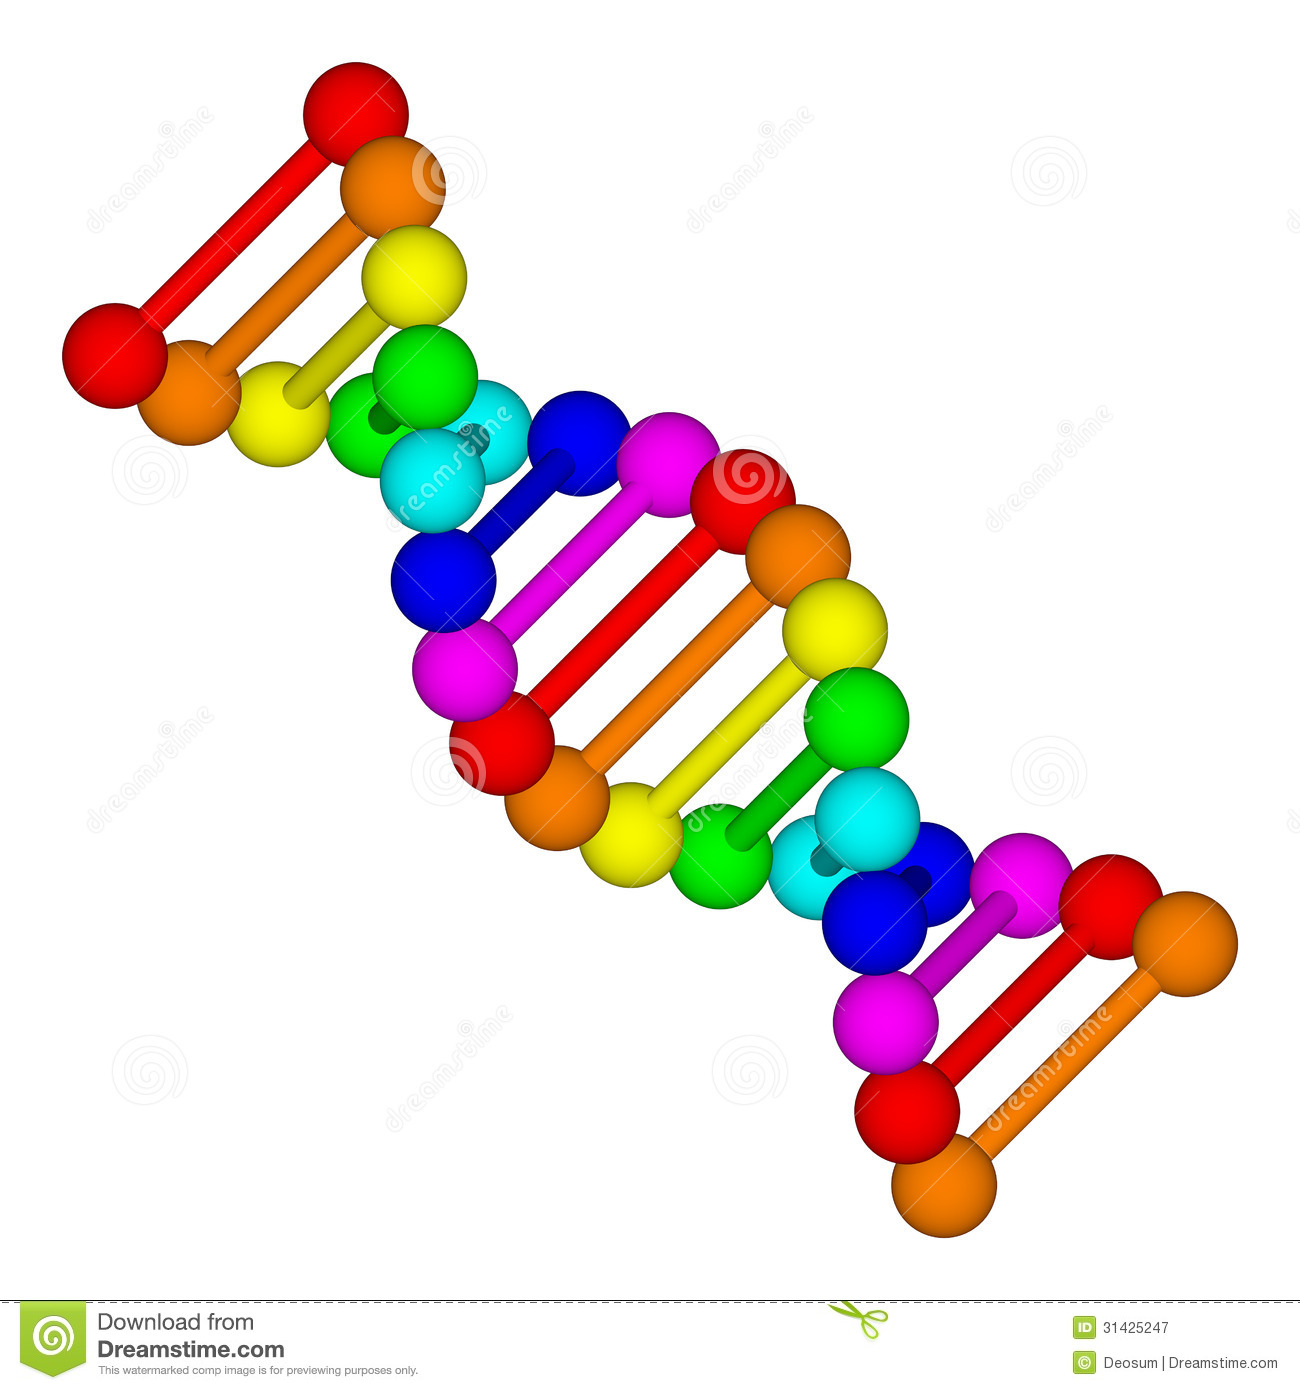 Nucleic Acids Clipart.